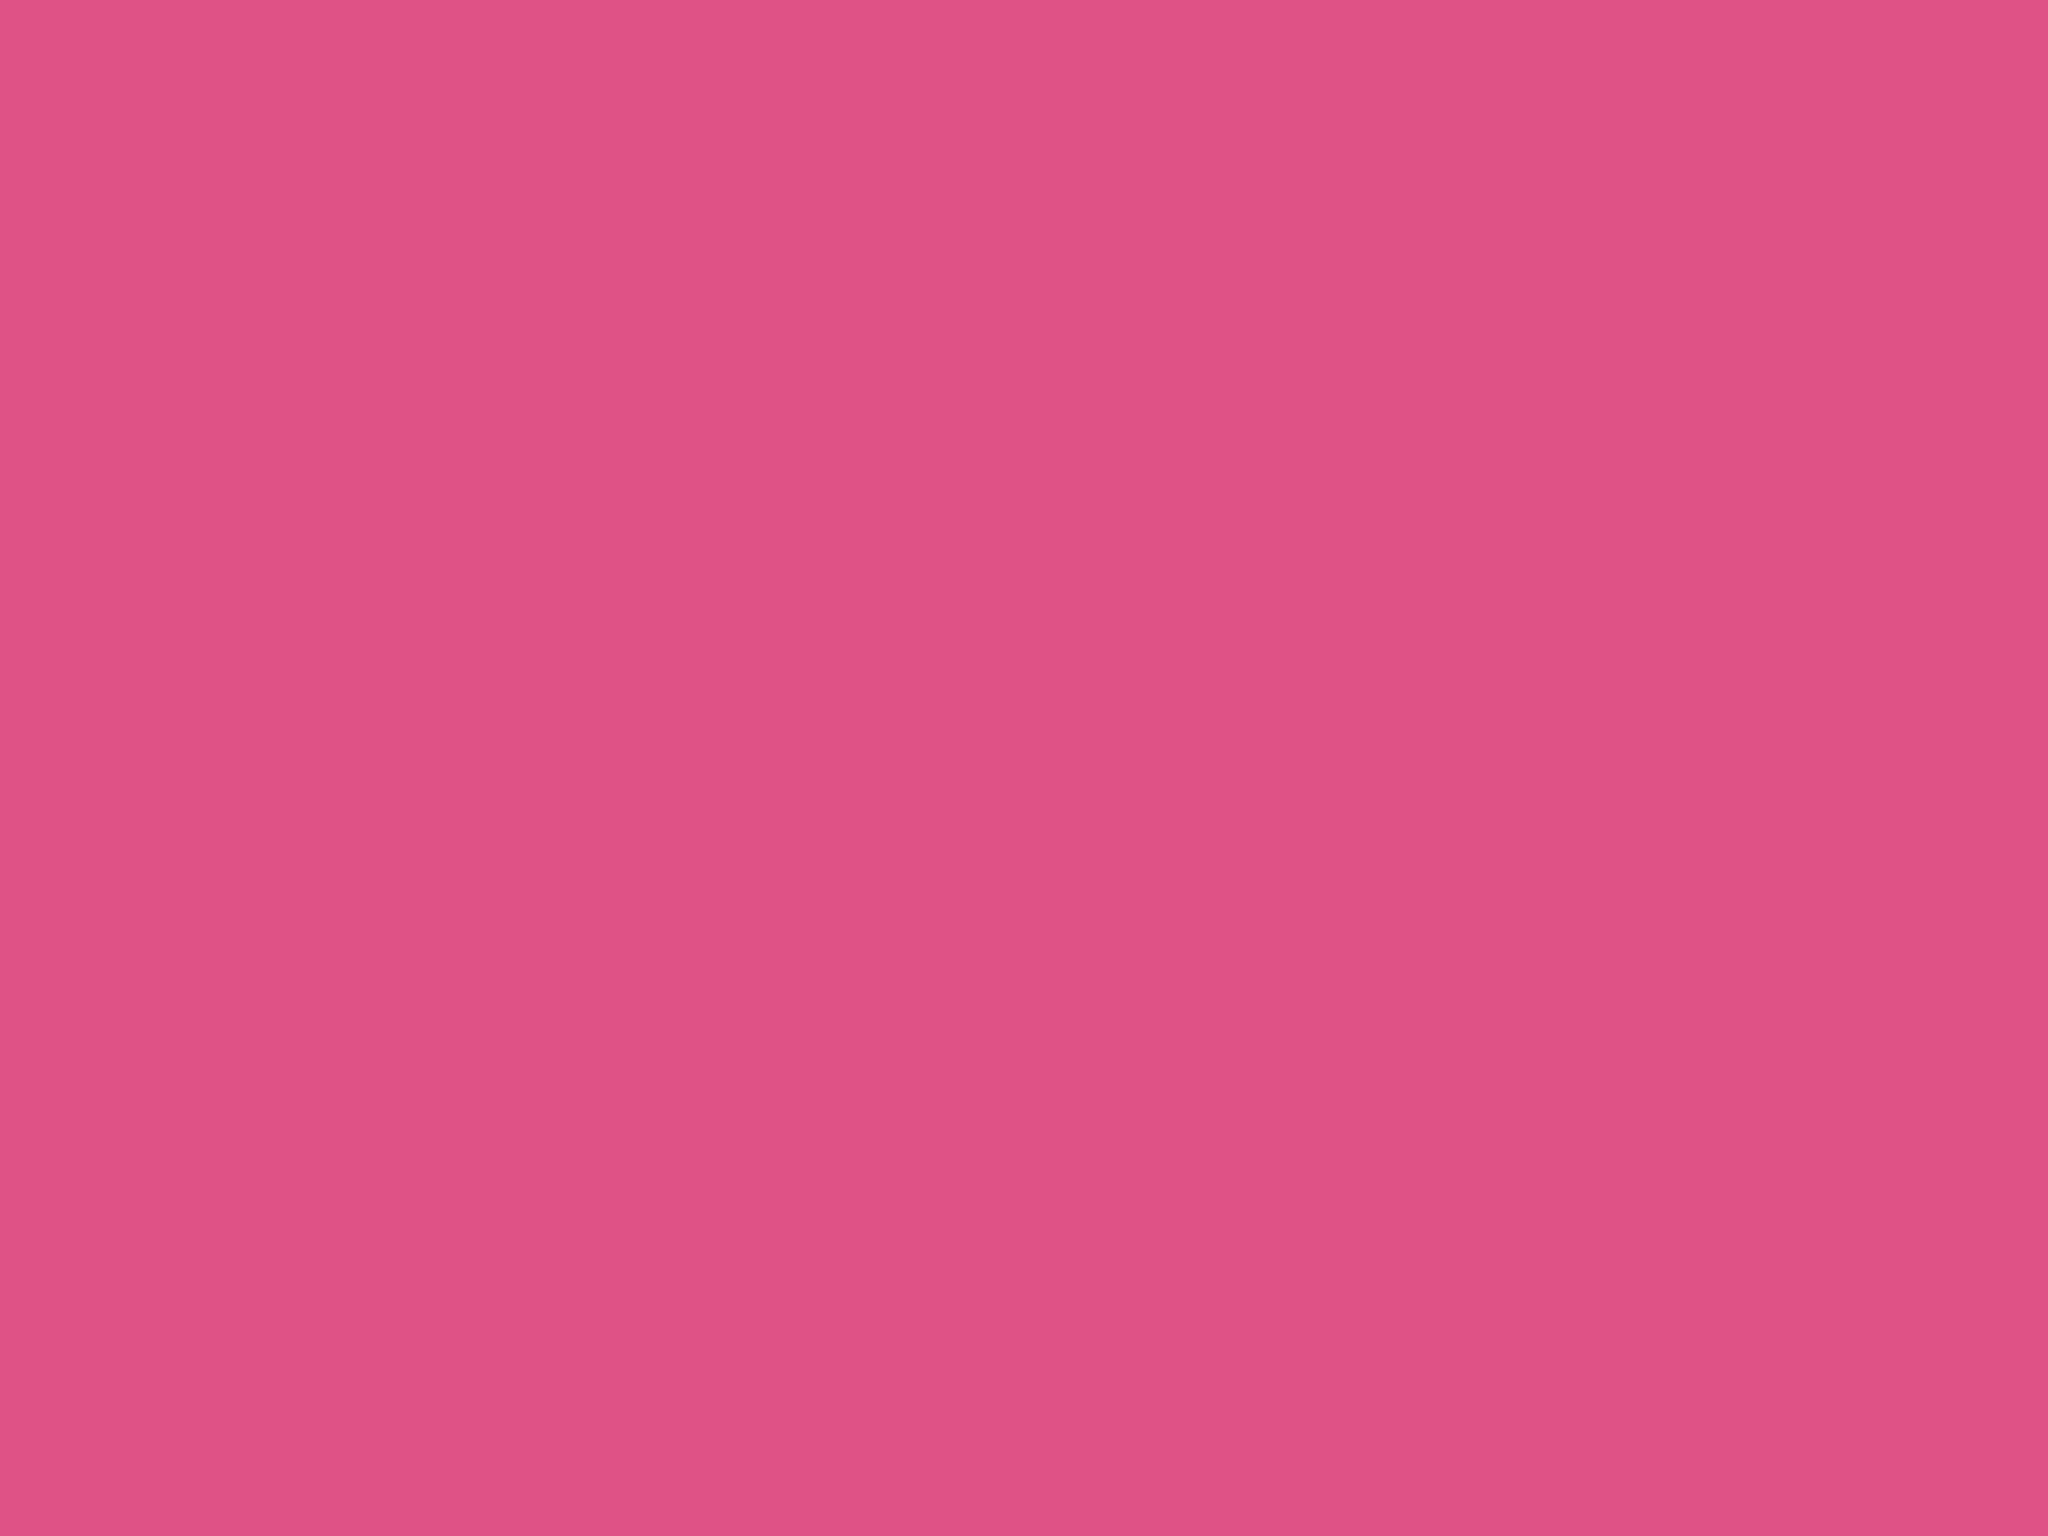 2048x1536 Fandango Pink Solid Color Background